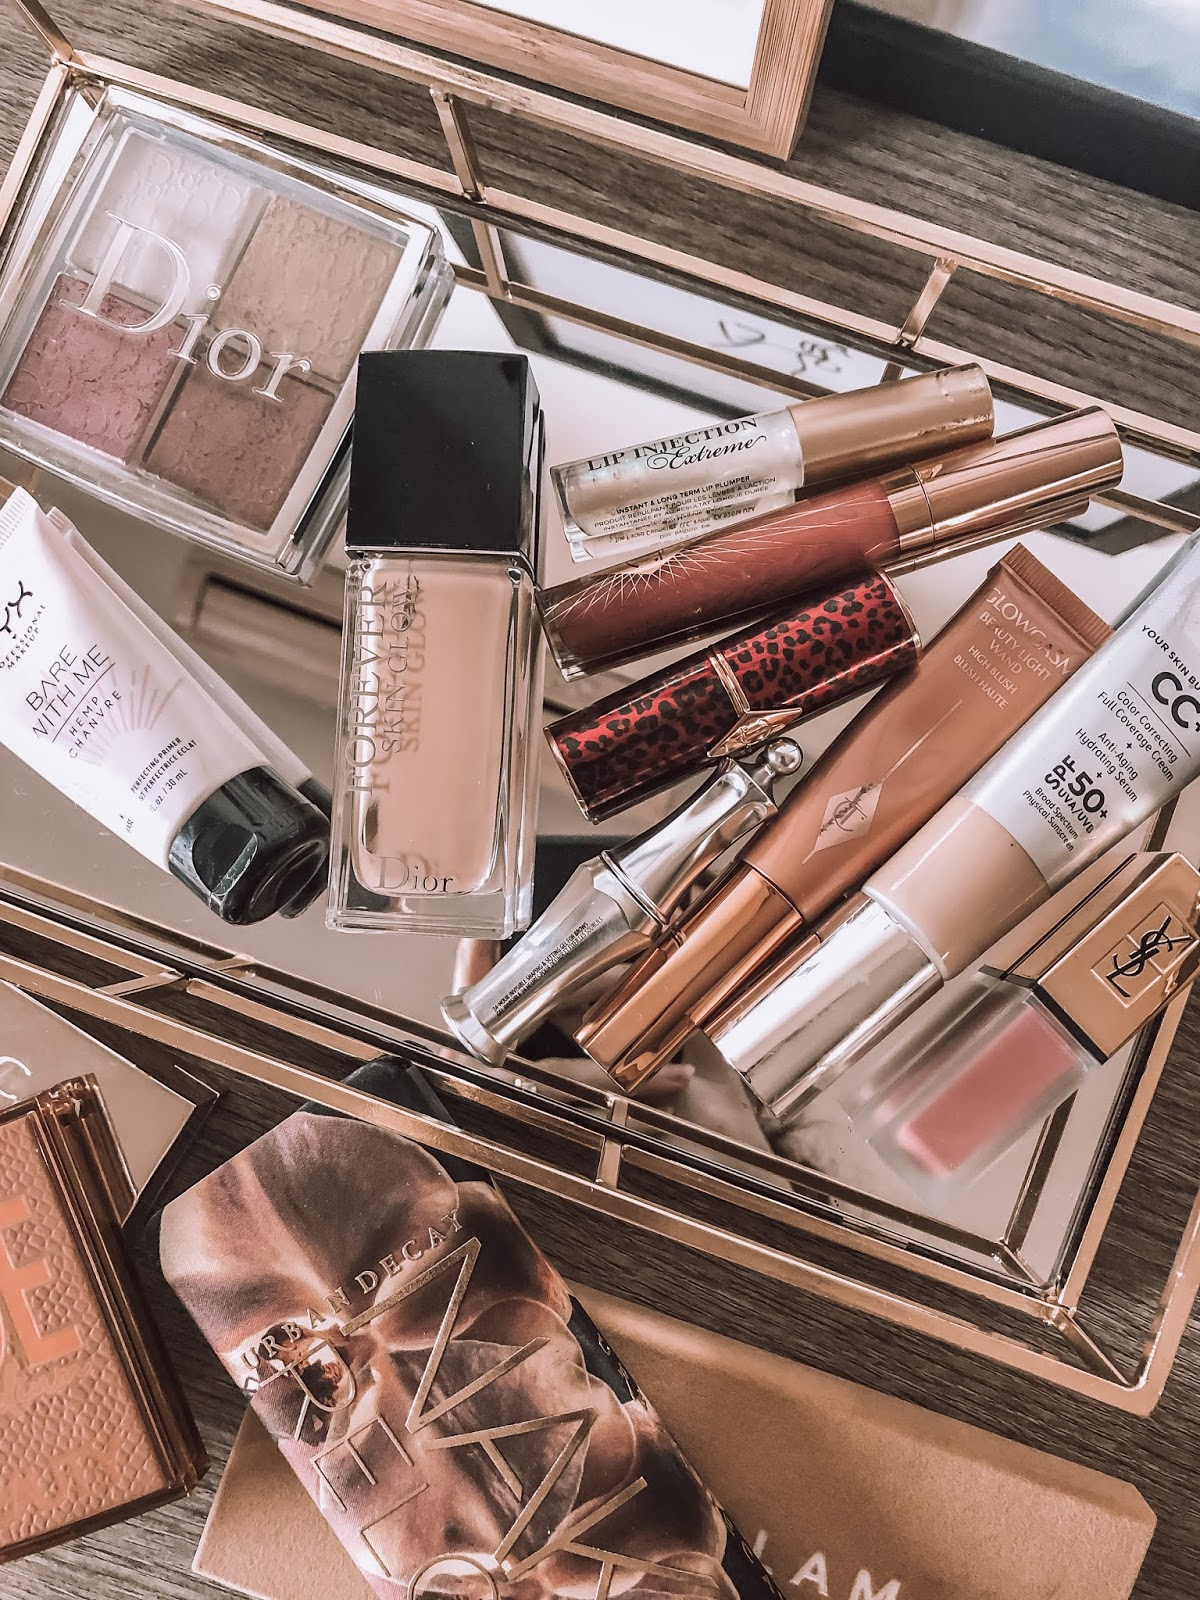 2019 beauty favorites, charlotte tilbury, dior, it cosmetics, abh, becca, huda,